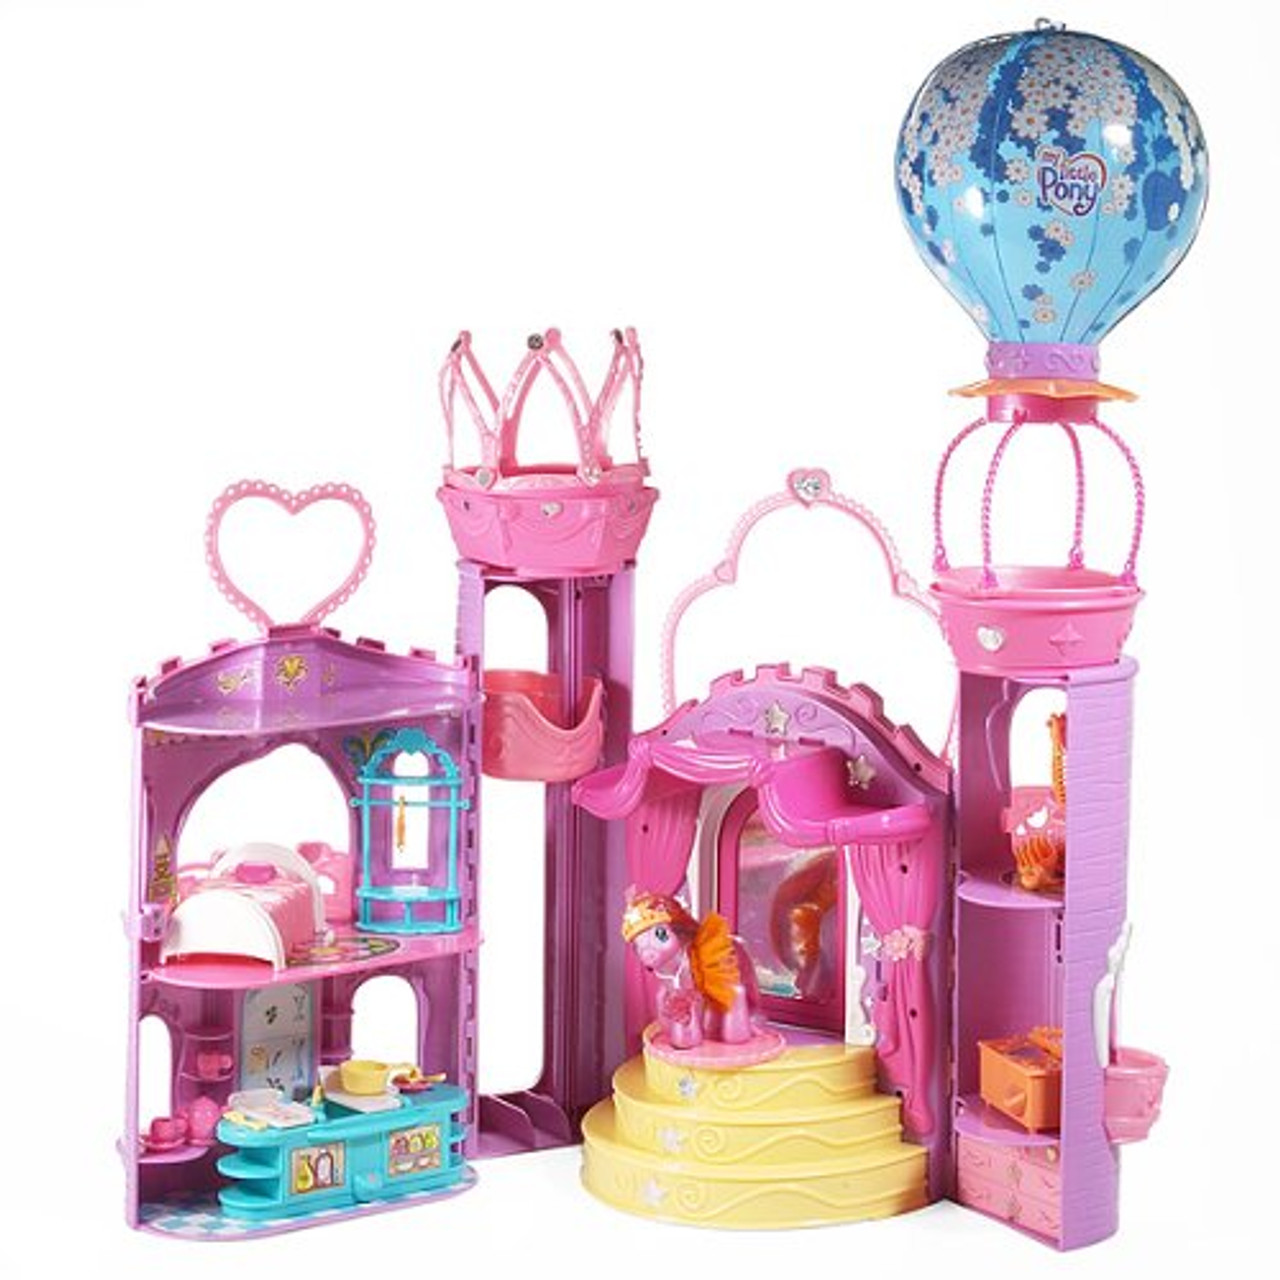 My Little Pony Classic Figures Celebration Castle Playset